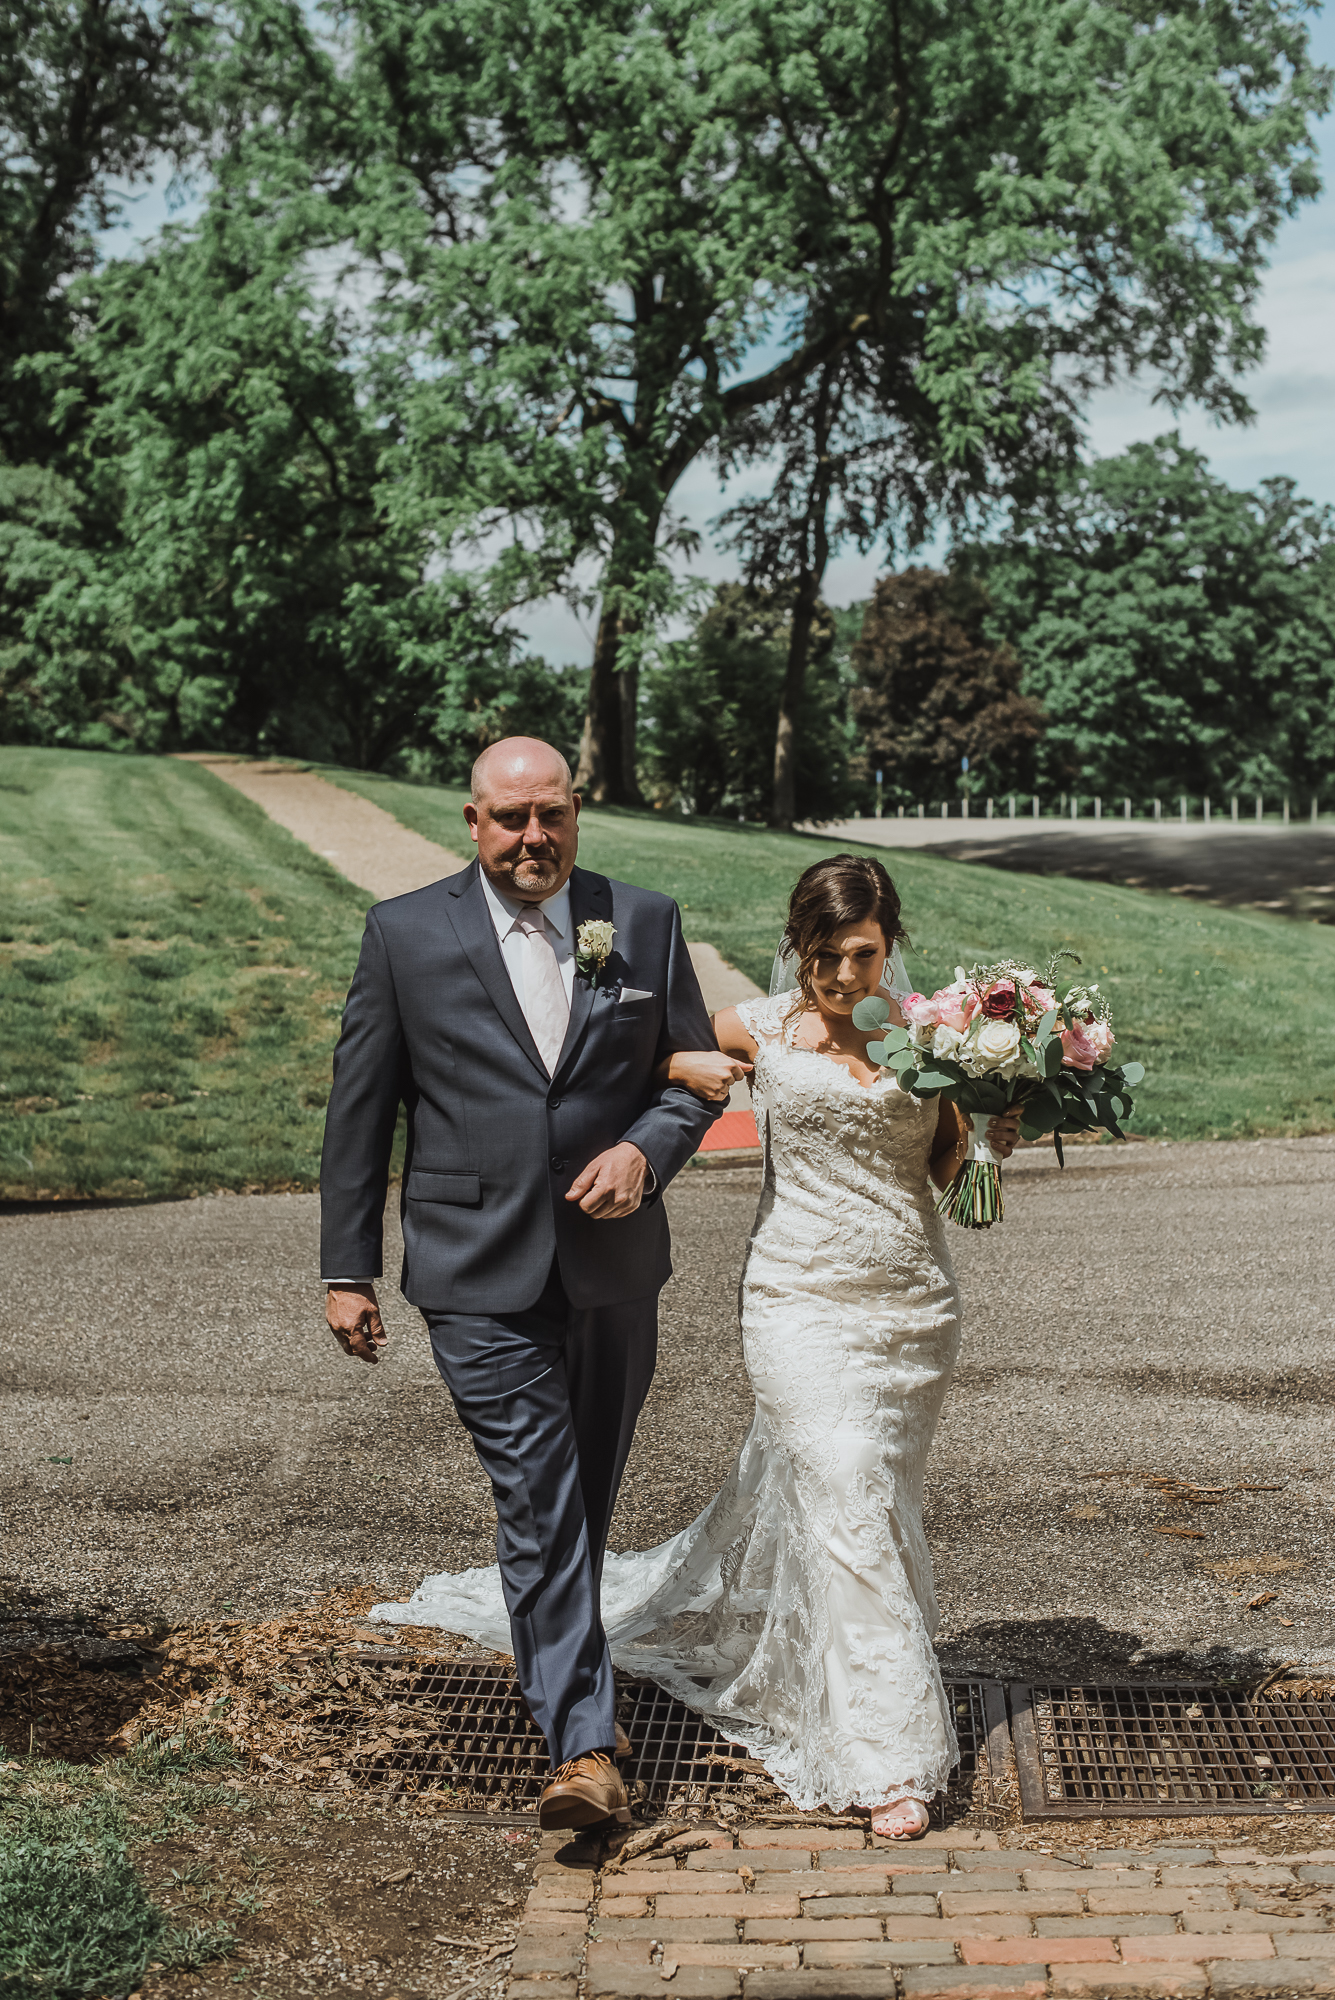 Melissa Cervantes Photography _ Kelsey + Ben Junebug Weddings Submission-46a.jpg